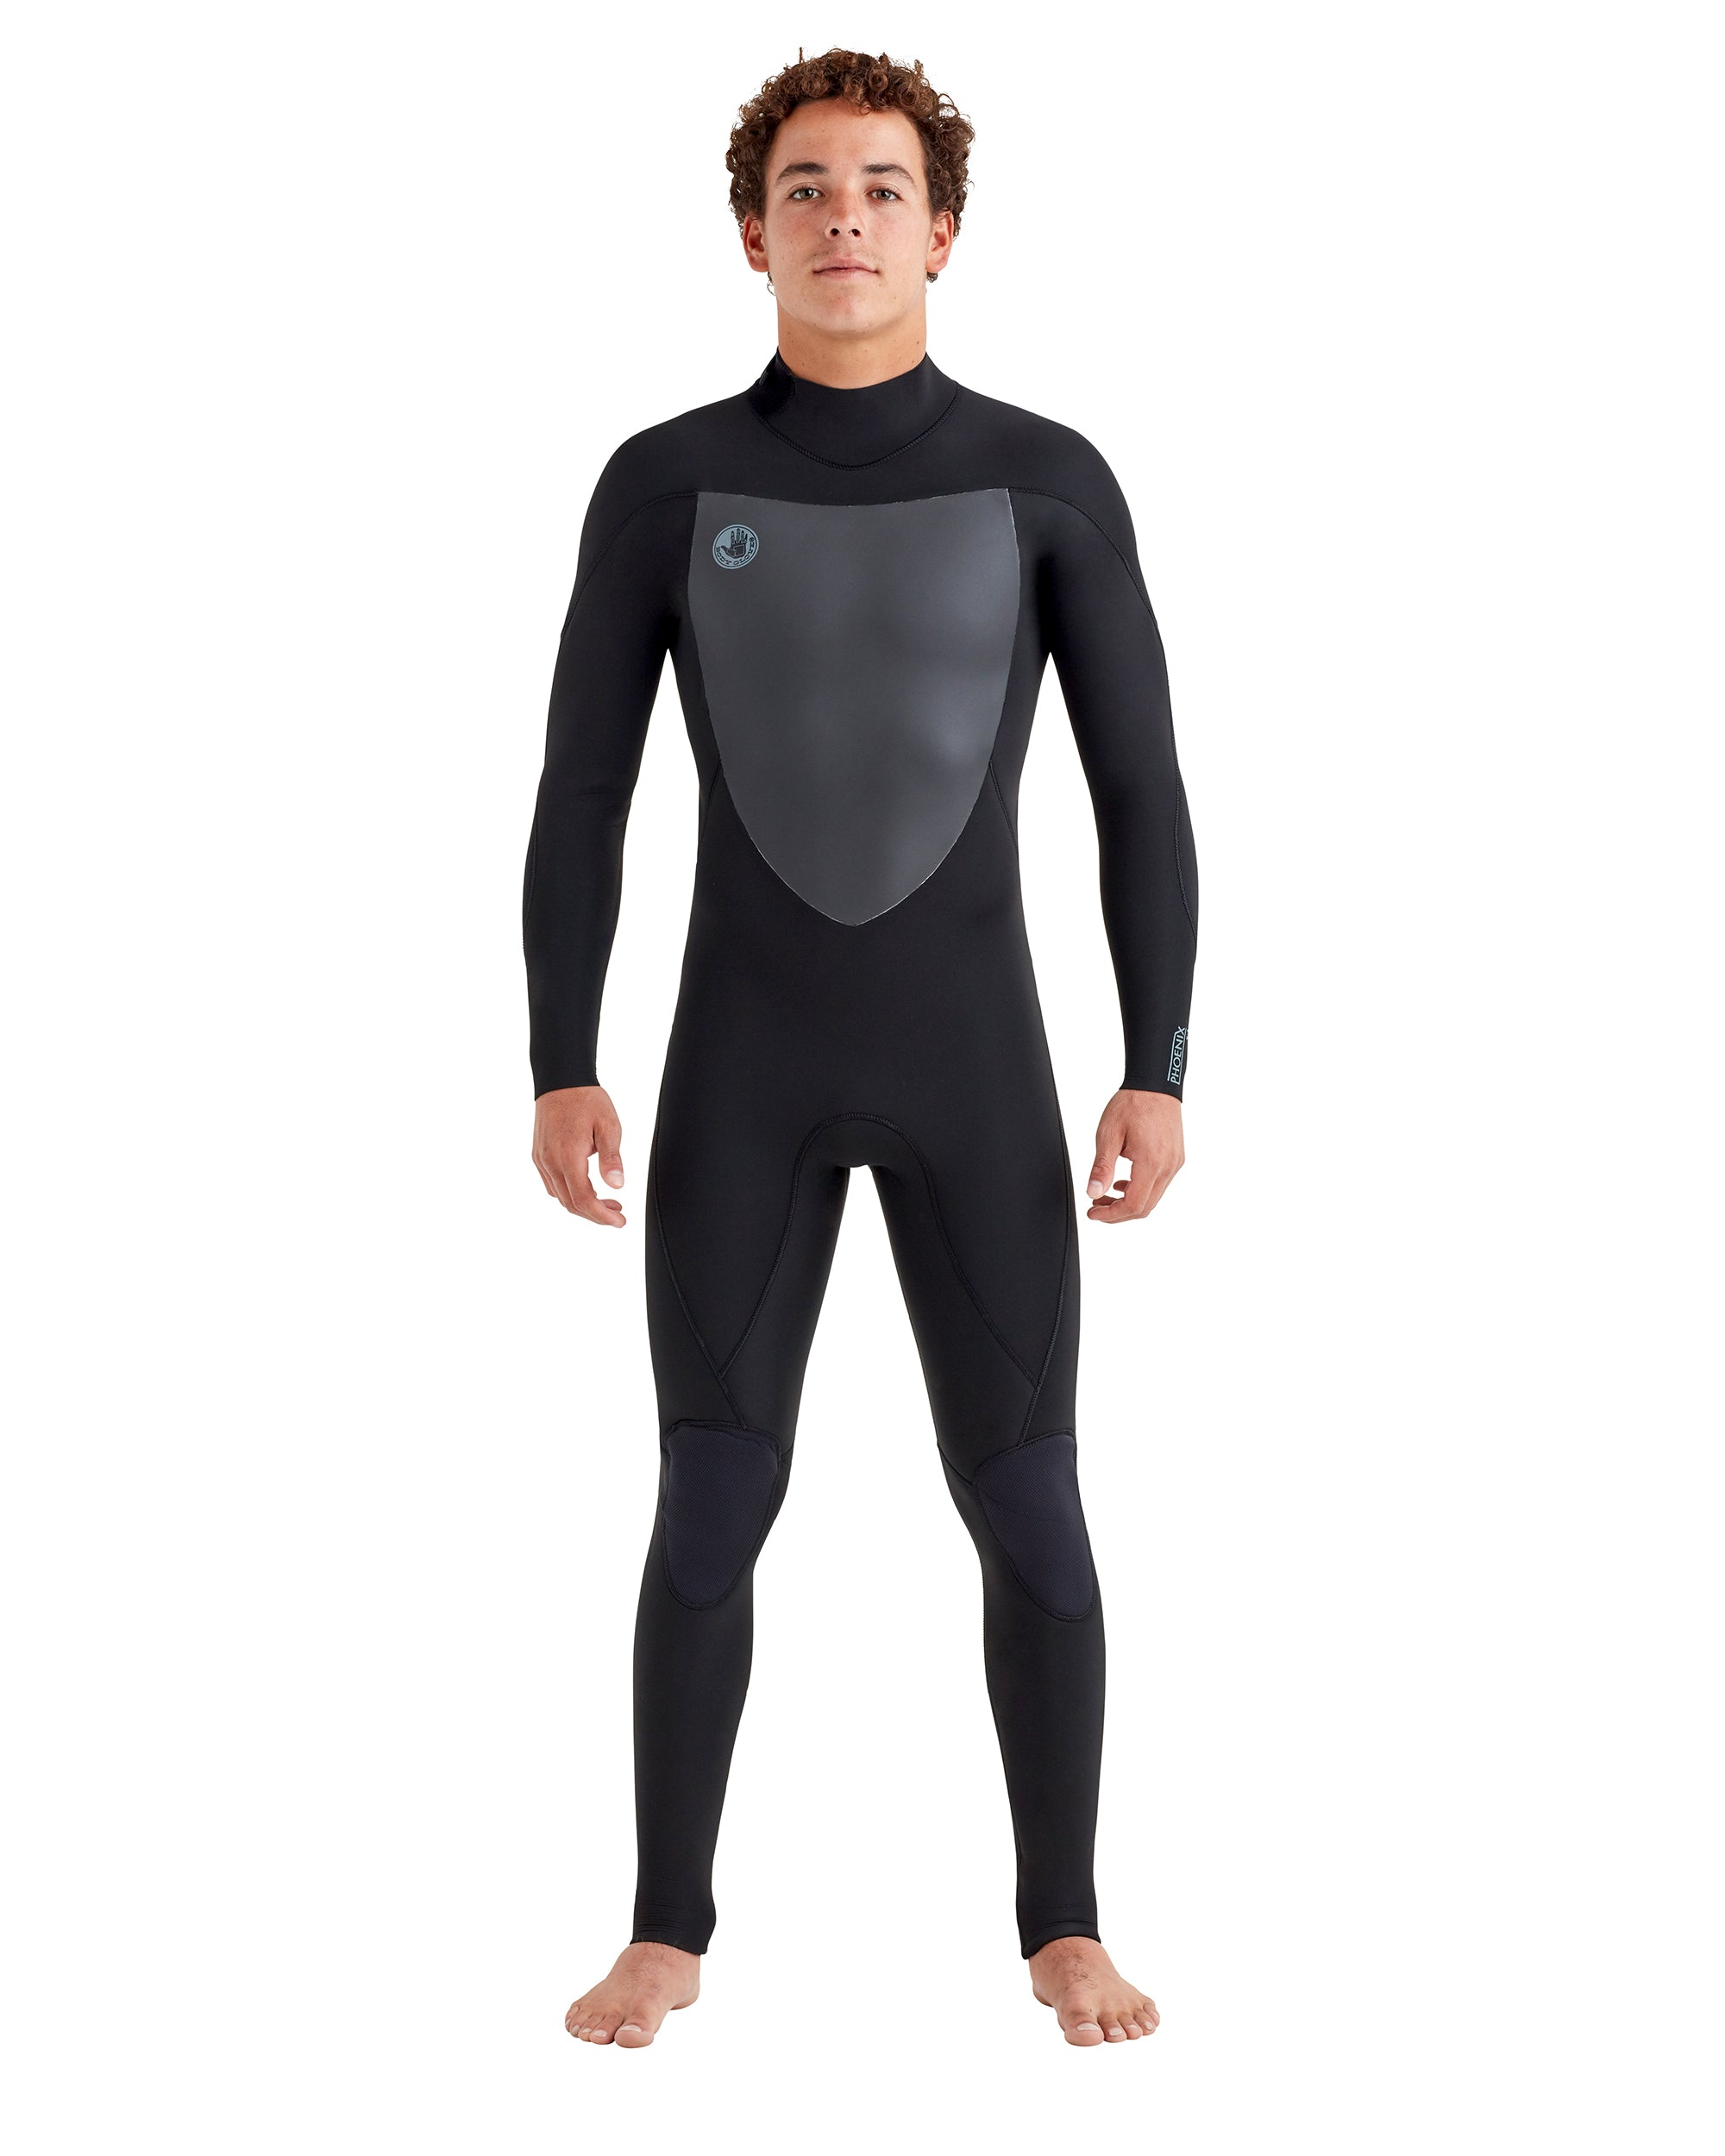 Phoenix 4/3mm Back-Zip Men's Fullsuit - Black